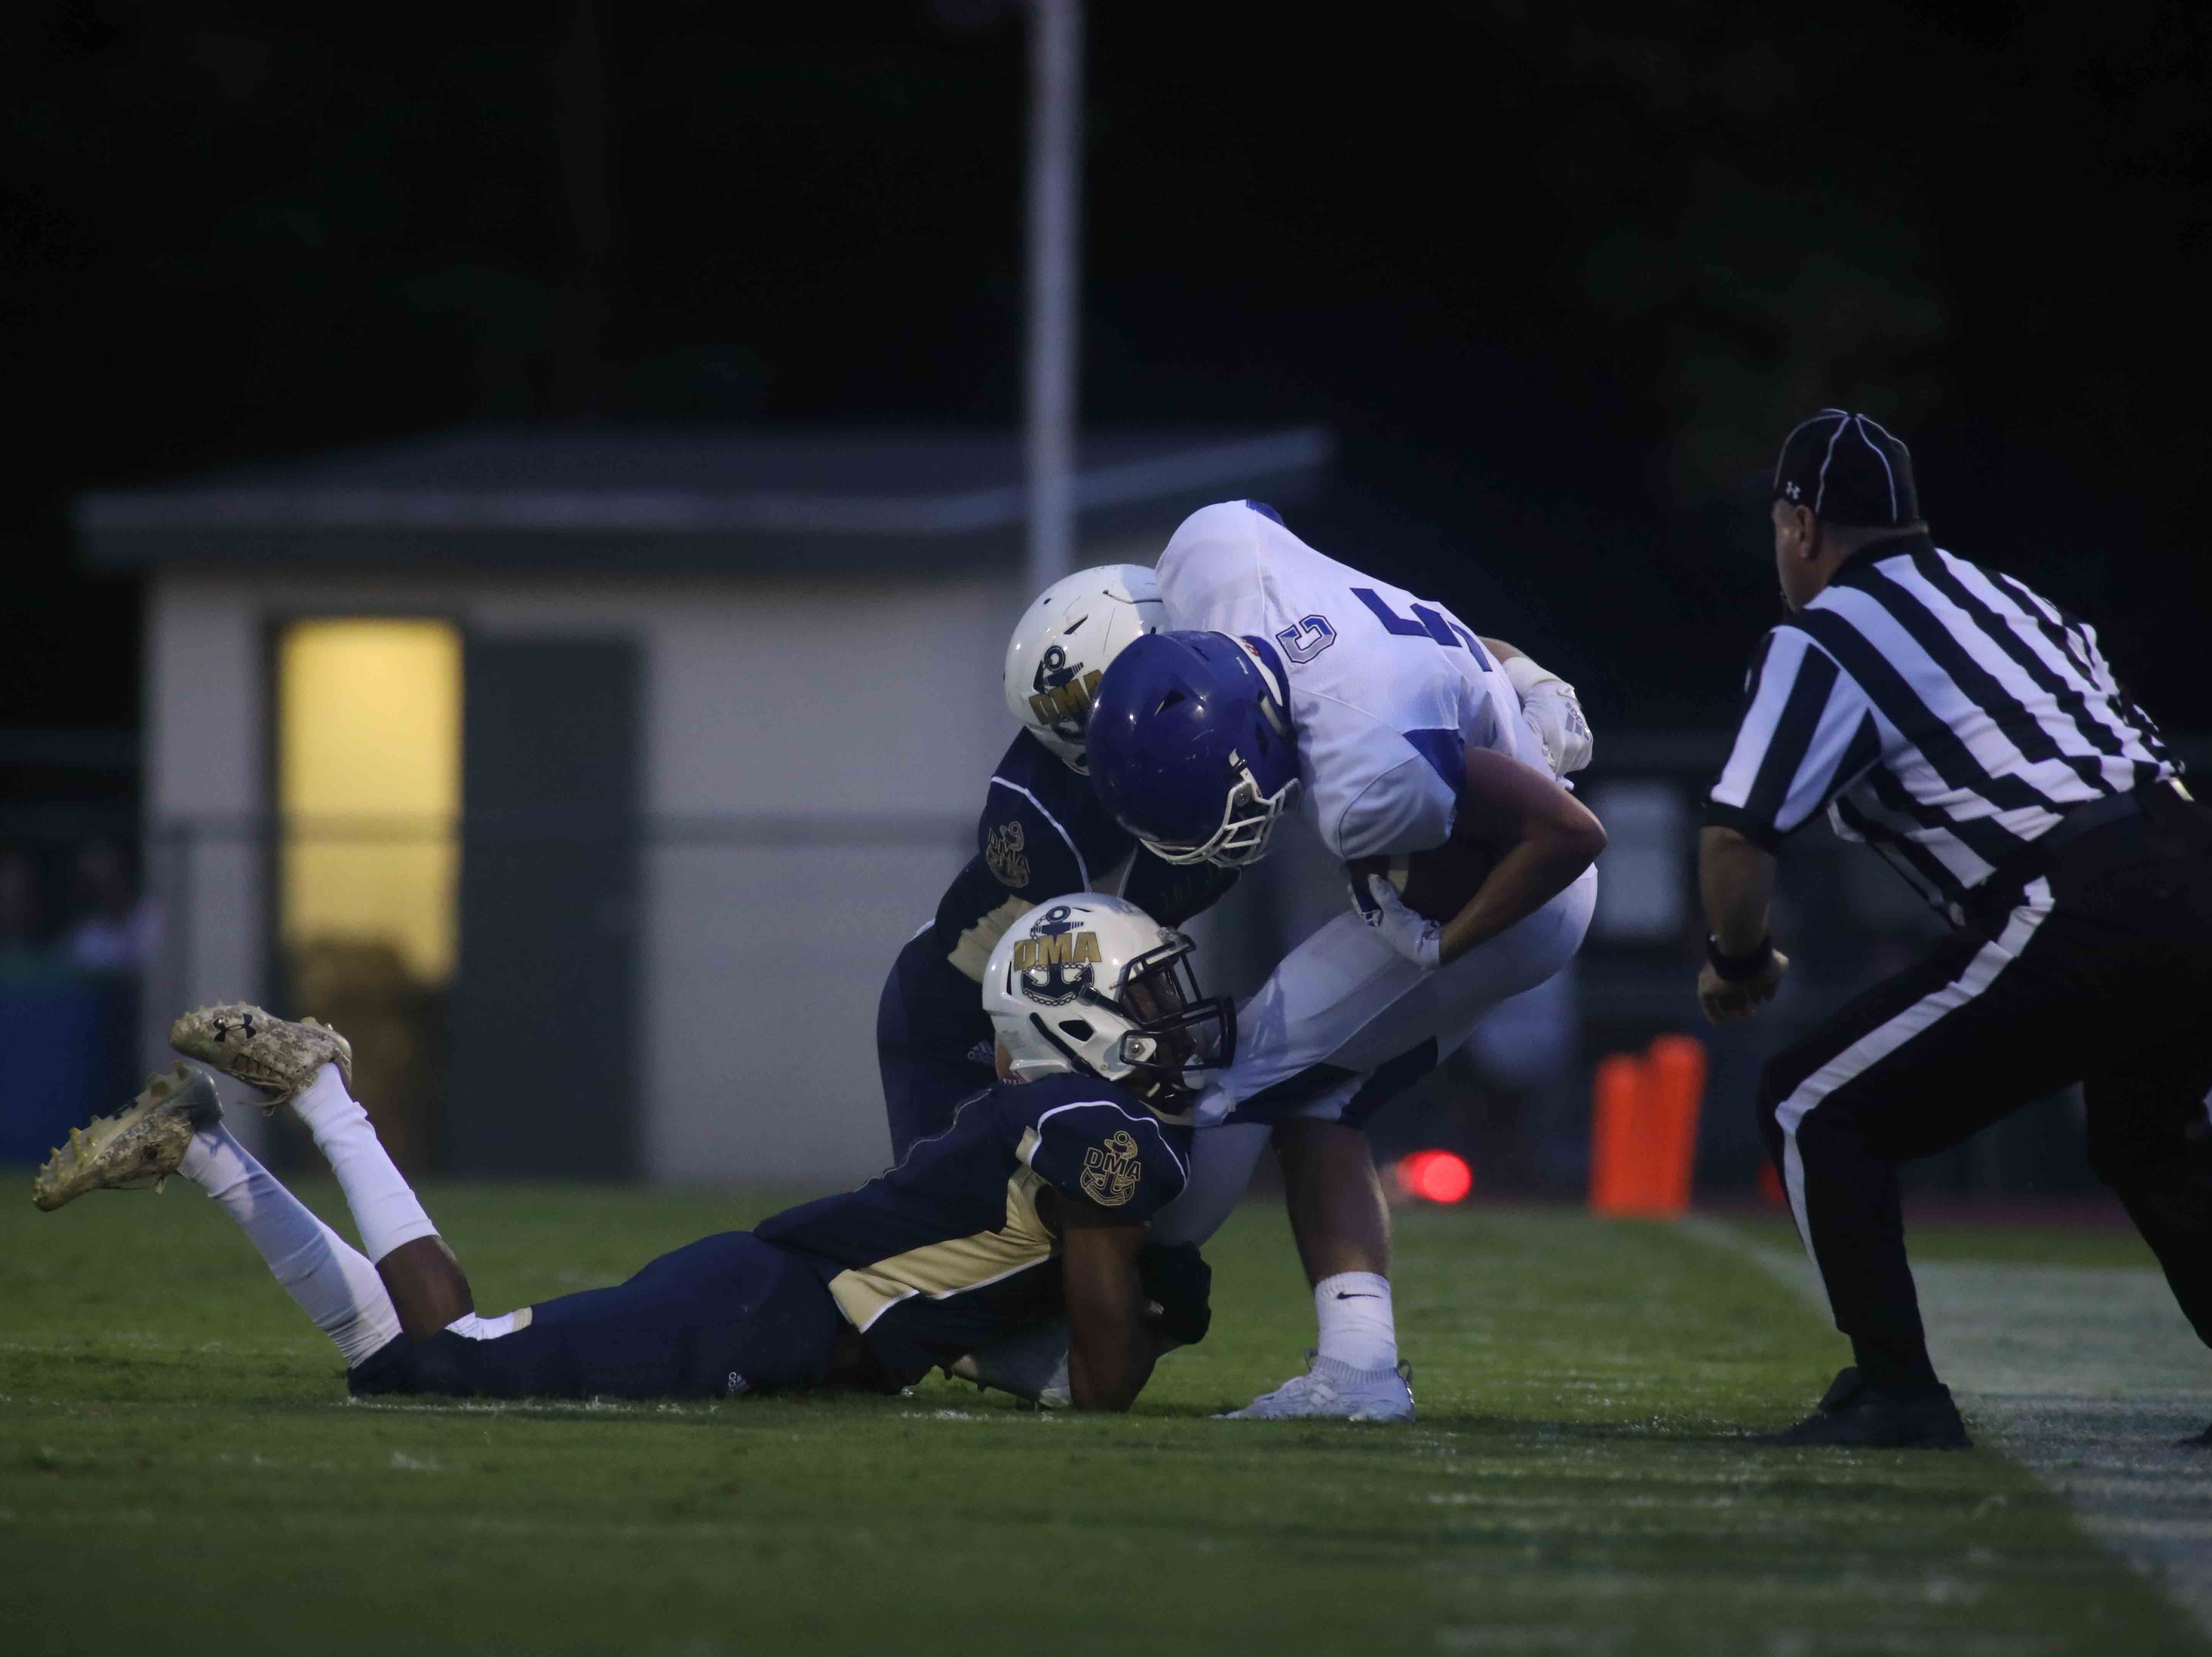 Delaware Military Academy running back Corahn Alleyne (1) tackles wide receiver Peter Gosser (5) in the first quarter of a week one DIAA game between Delaware Military Academy and Charter School of Wilmington, Friday, Sept. 07, 2018 at Baynard Stadium in Wilmington, DE.